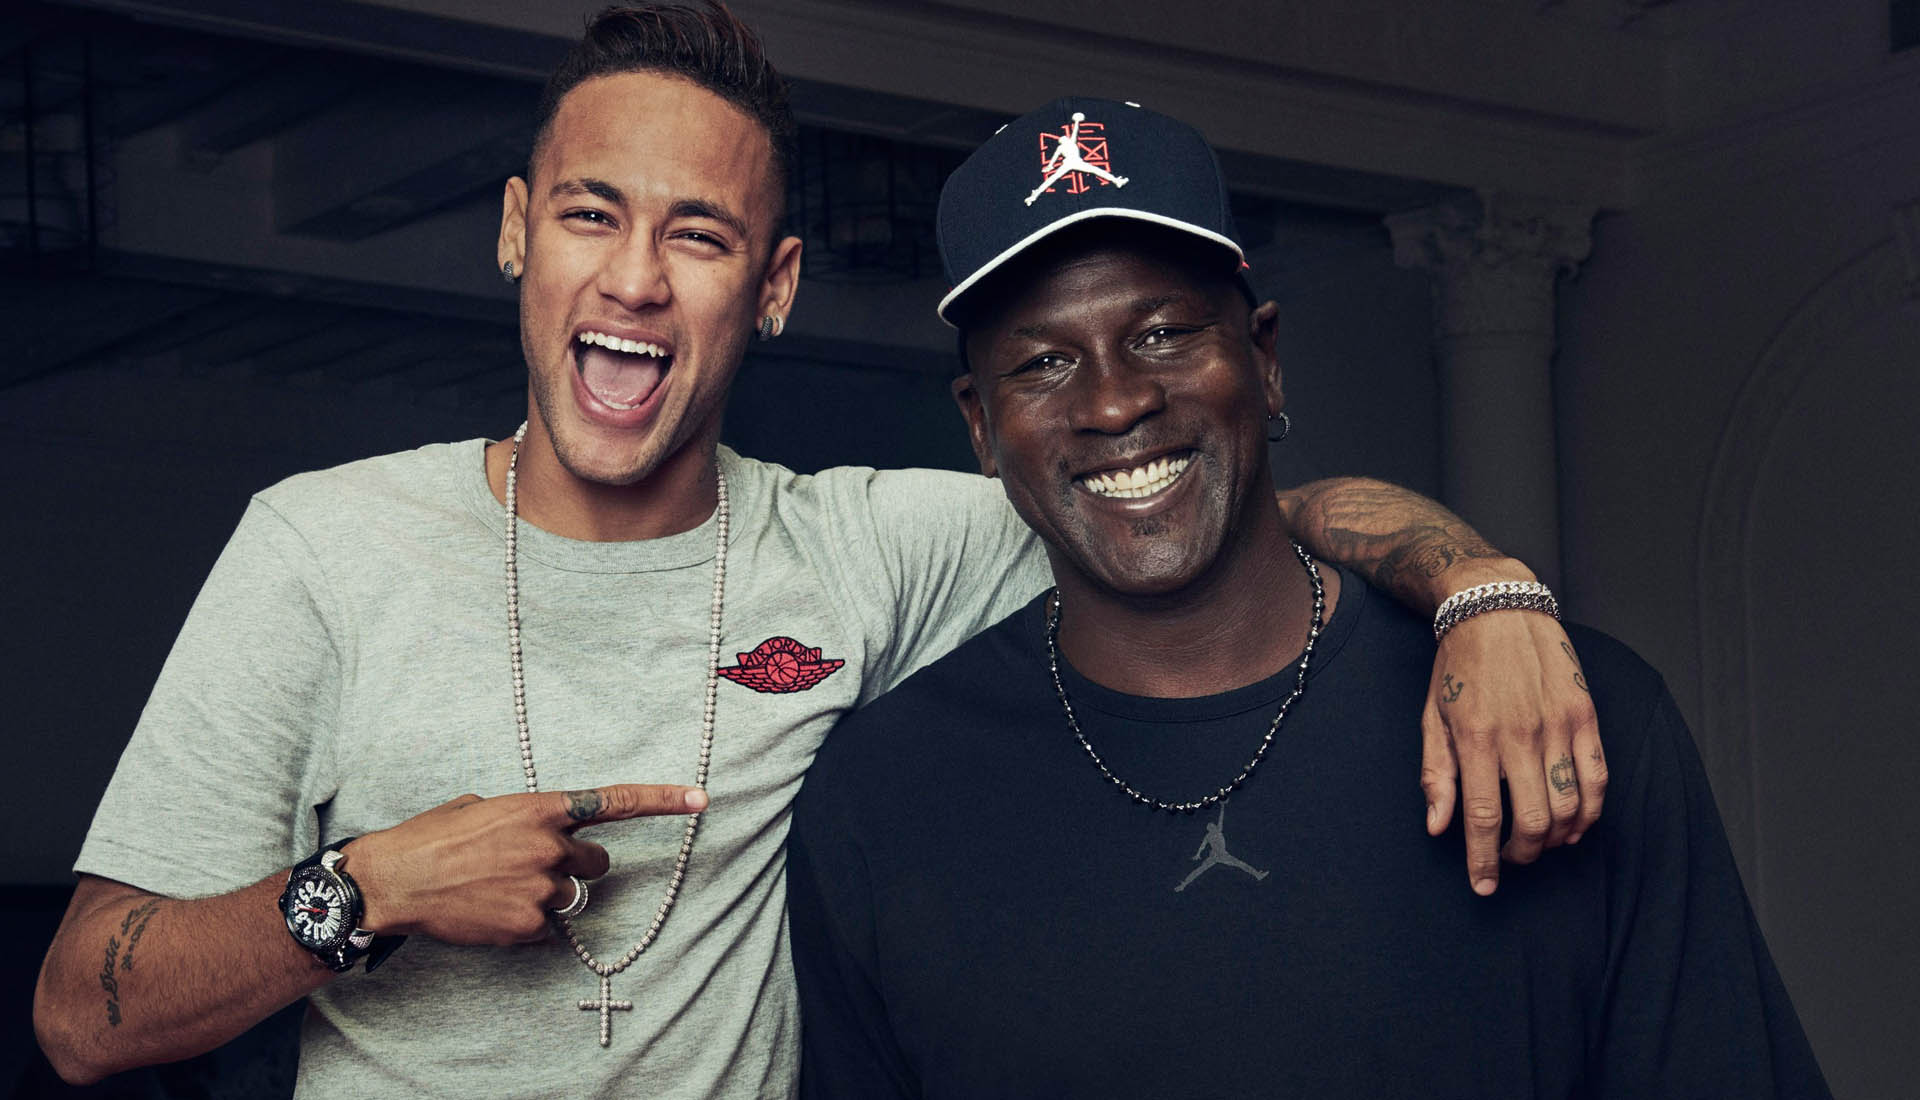 Neymar collaborated with Michael Jordan in 2016